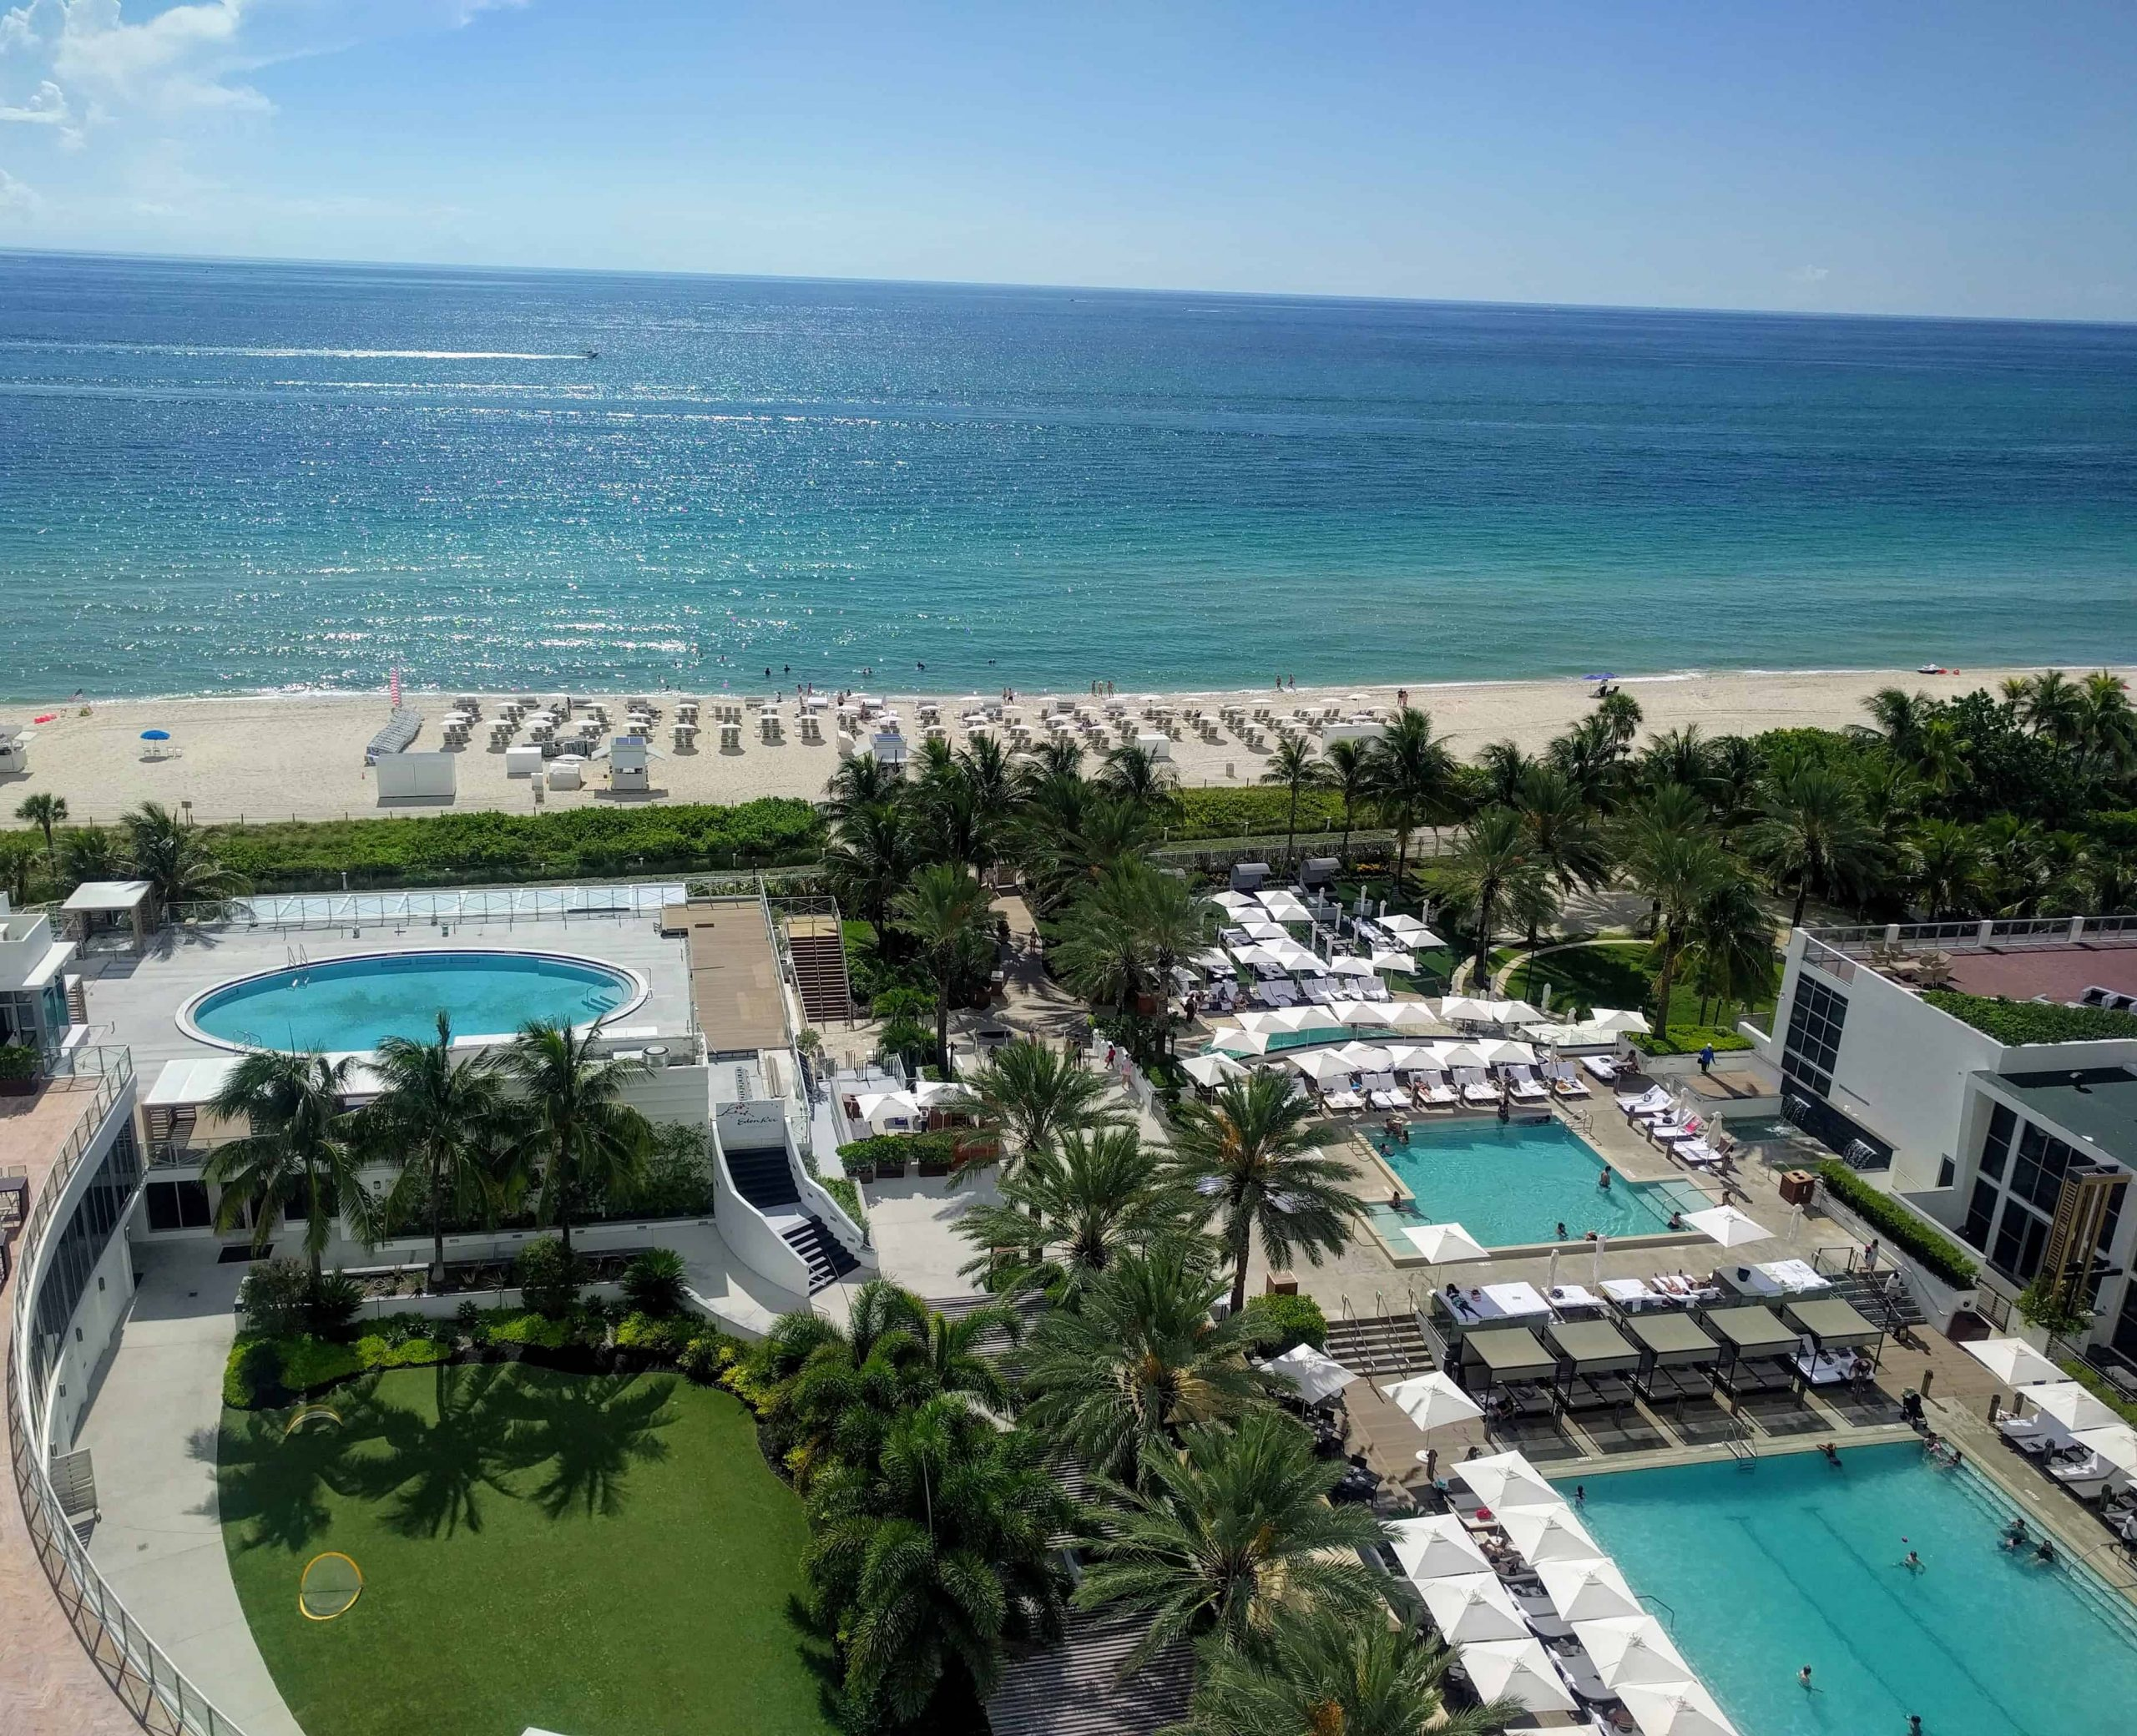 Miami Girls Trip: Where to Stay, Play, and Eat